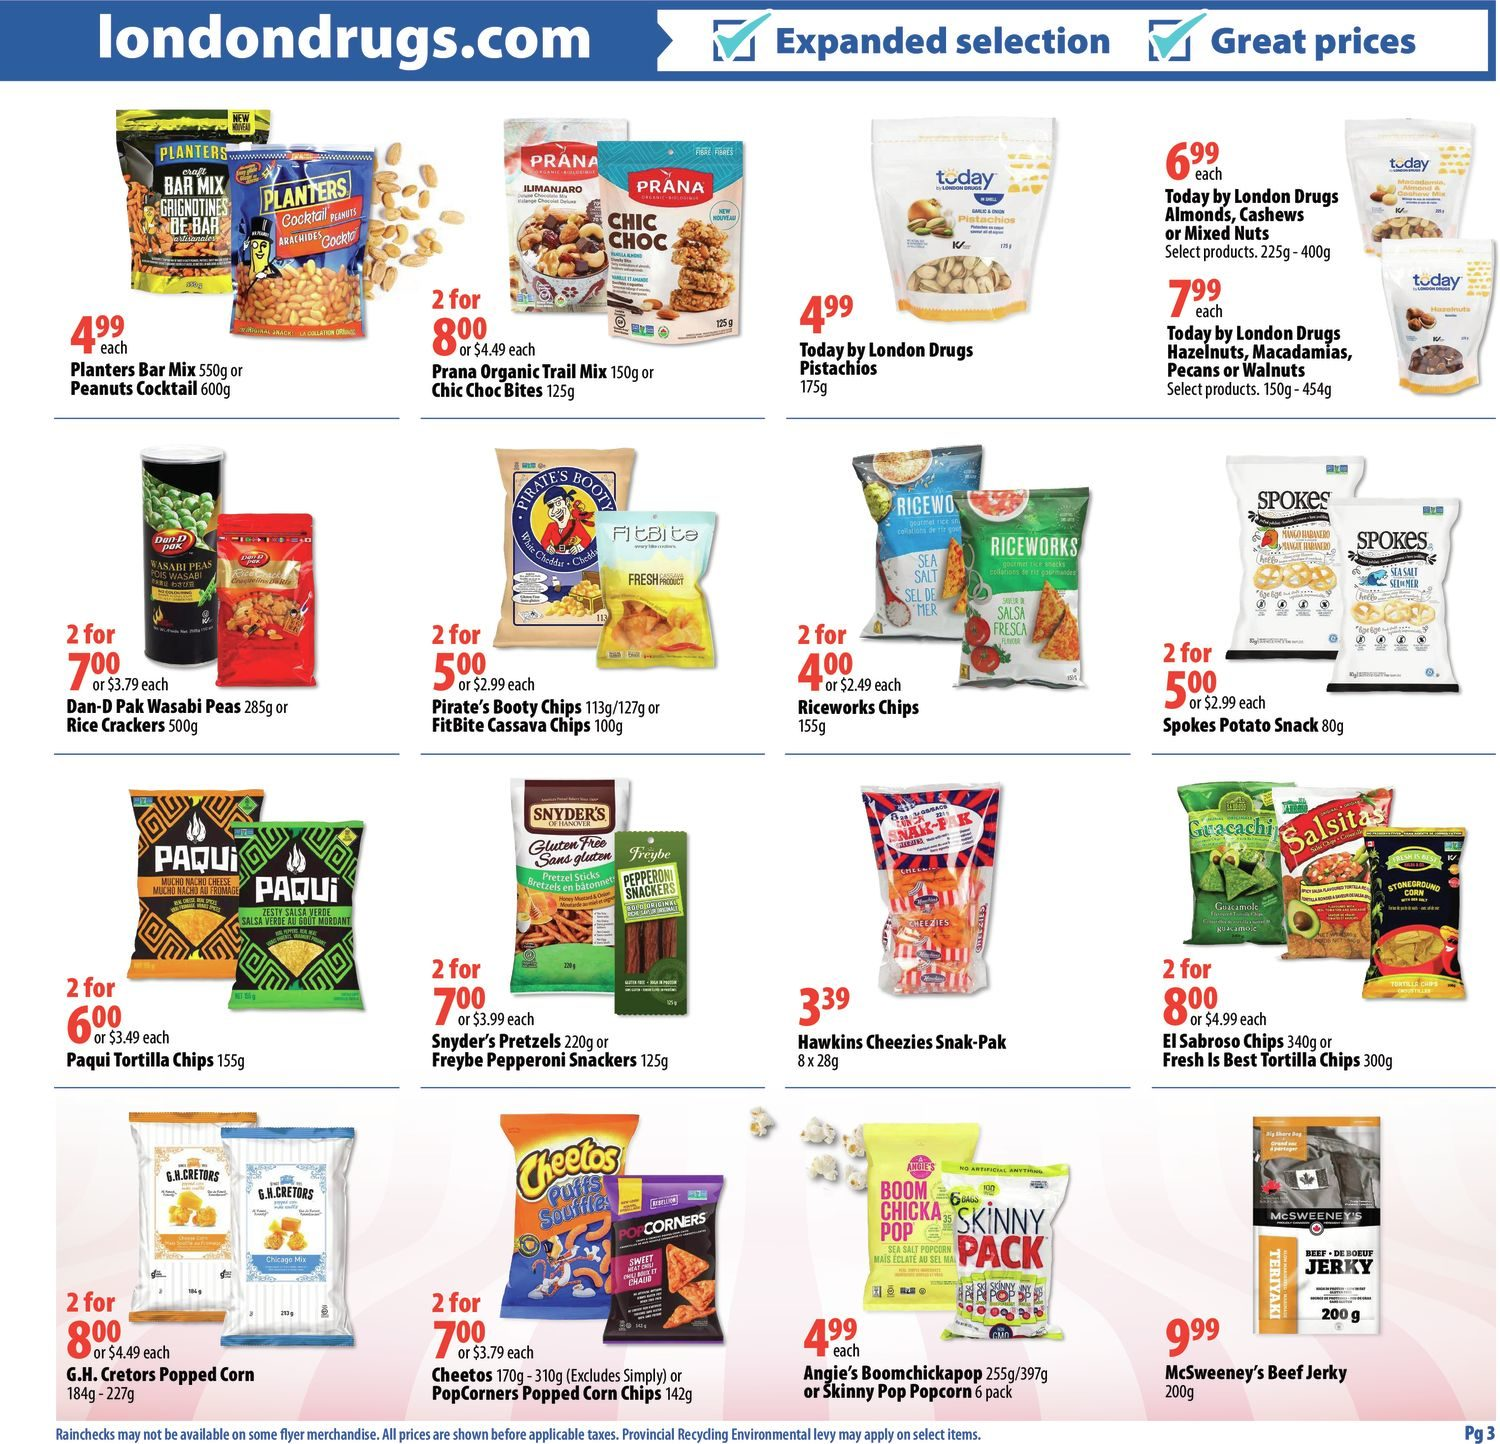 London Drugs - Sweets & Snacks - Page 3